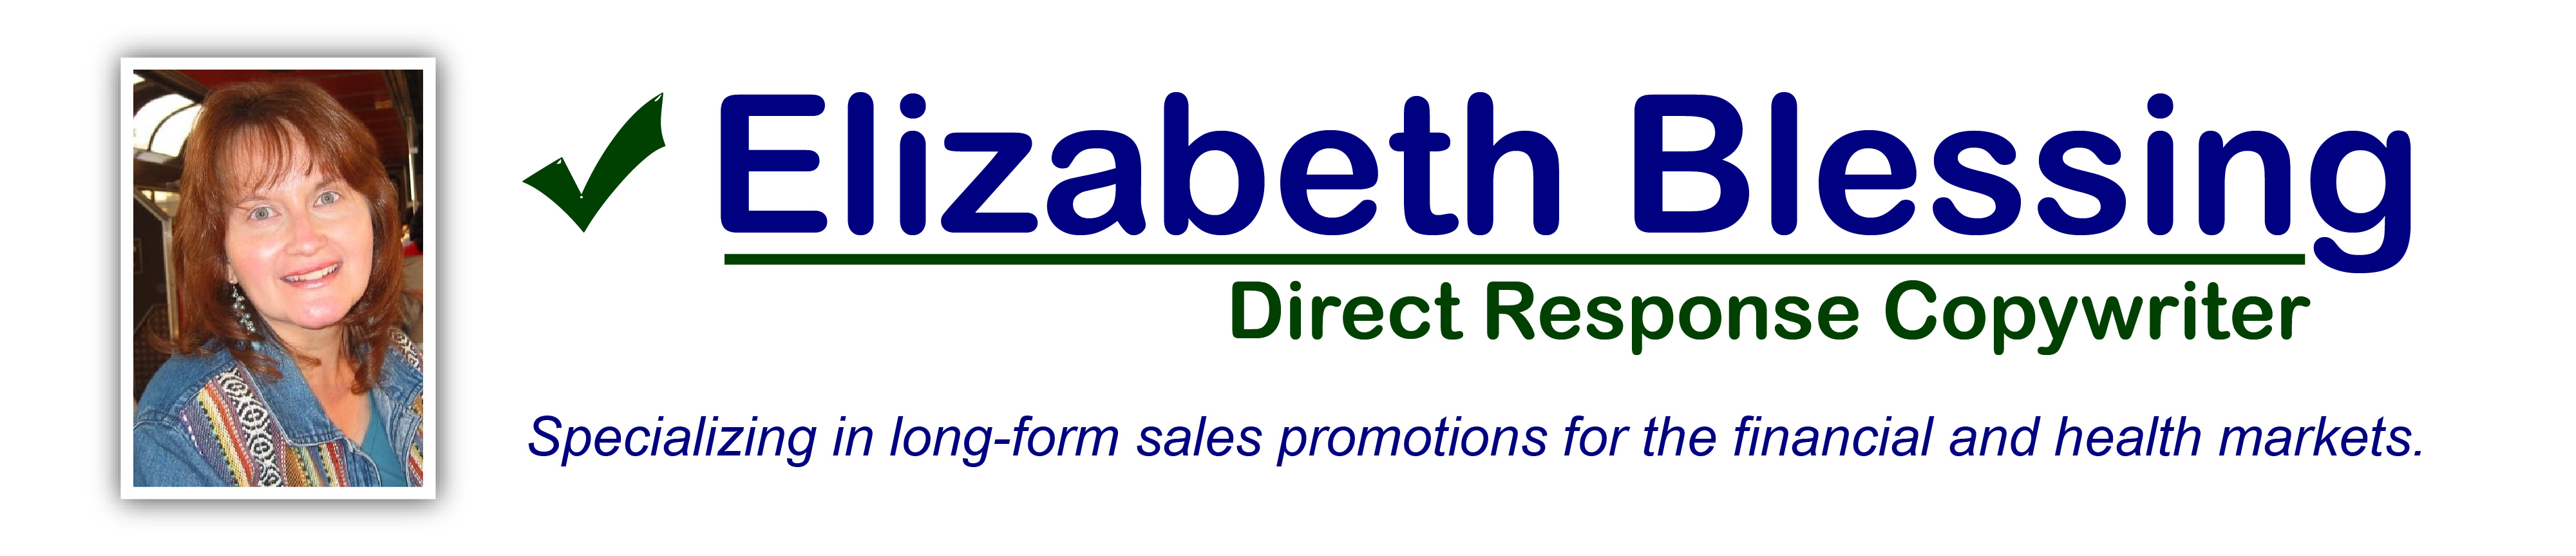 Direct Response Copywriter for the Financial and Health Markets